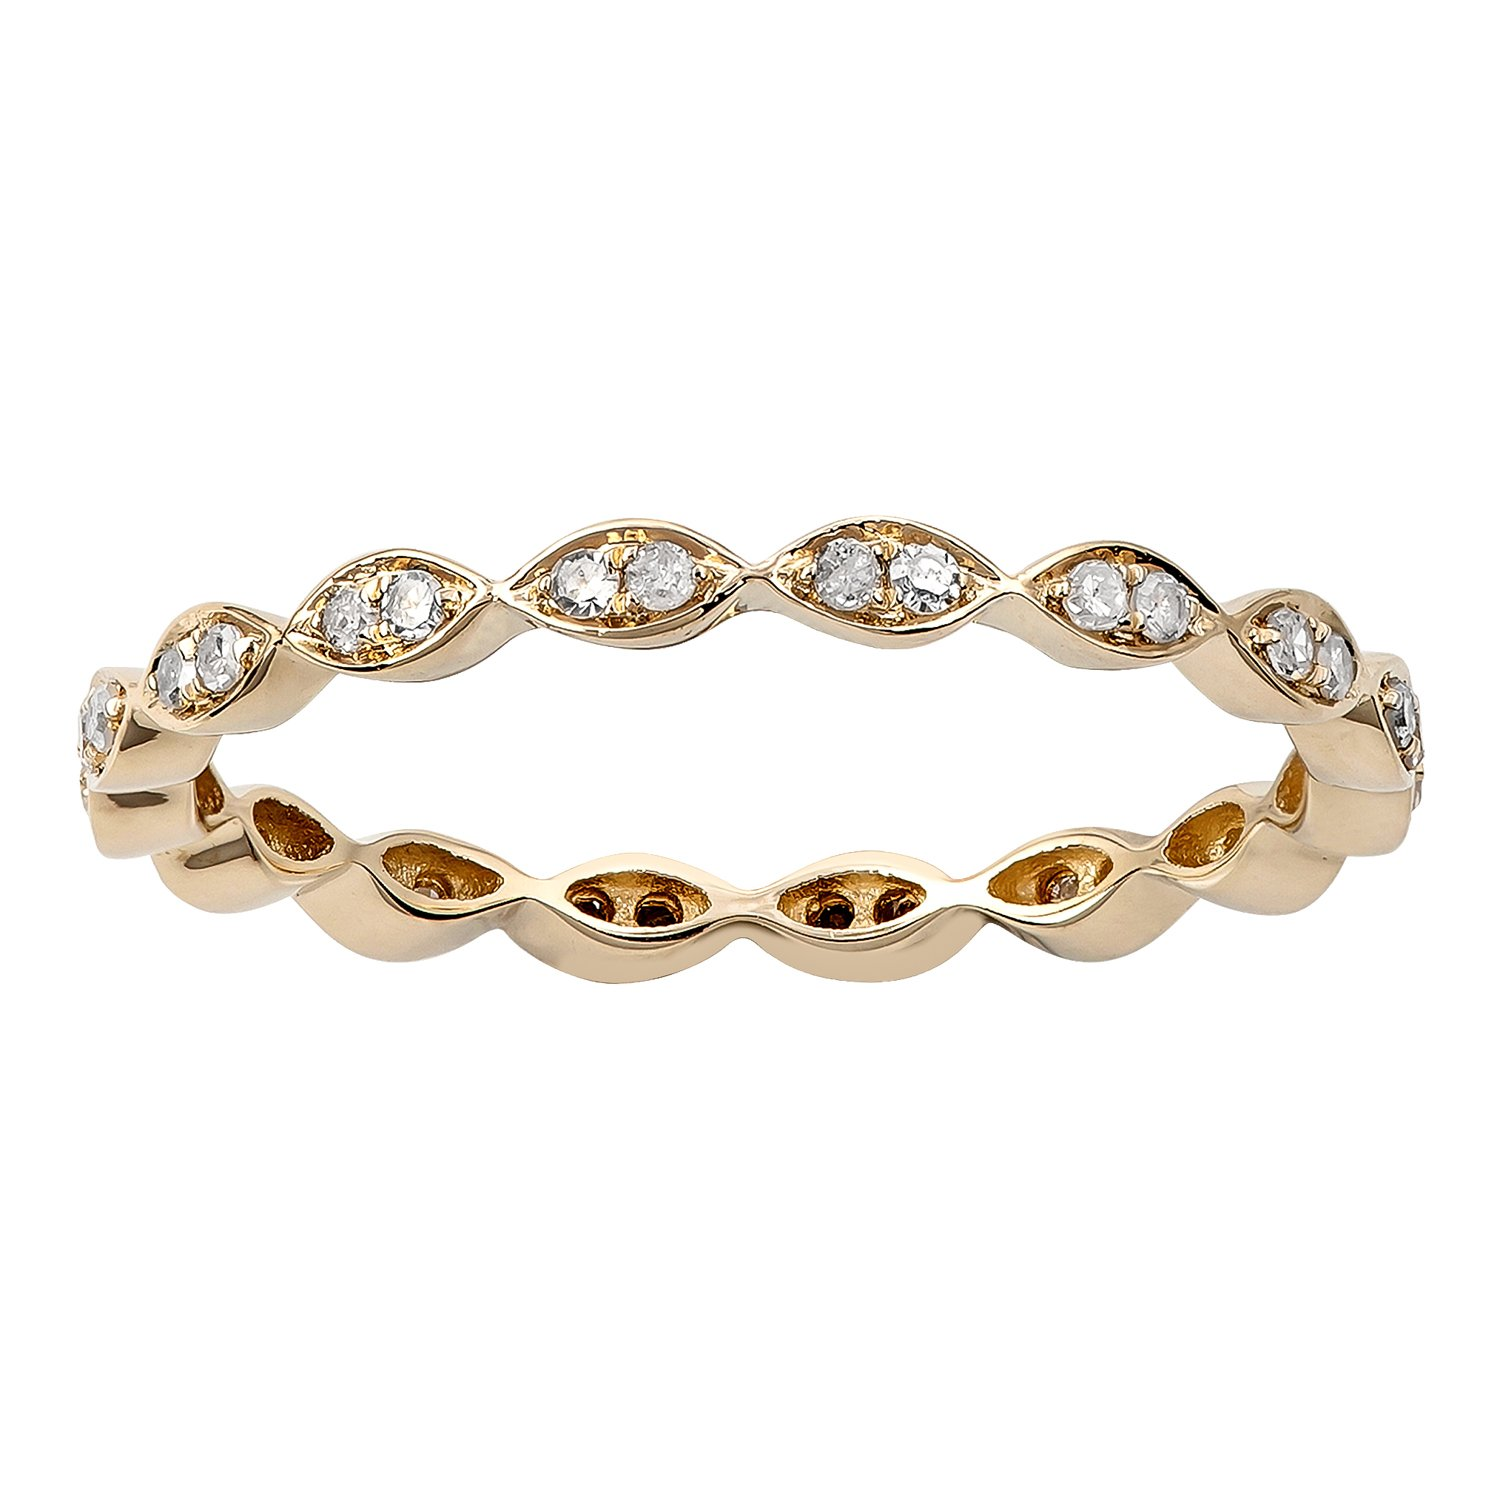 10k Yellow Gold Stackable Eternity Diamond Wedding Band (1/4 cttw, I-J Color, I2-I3 Clarity)